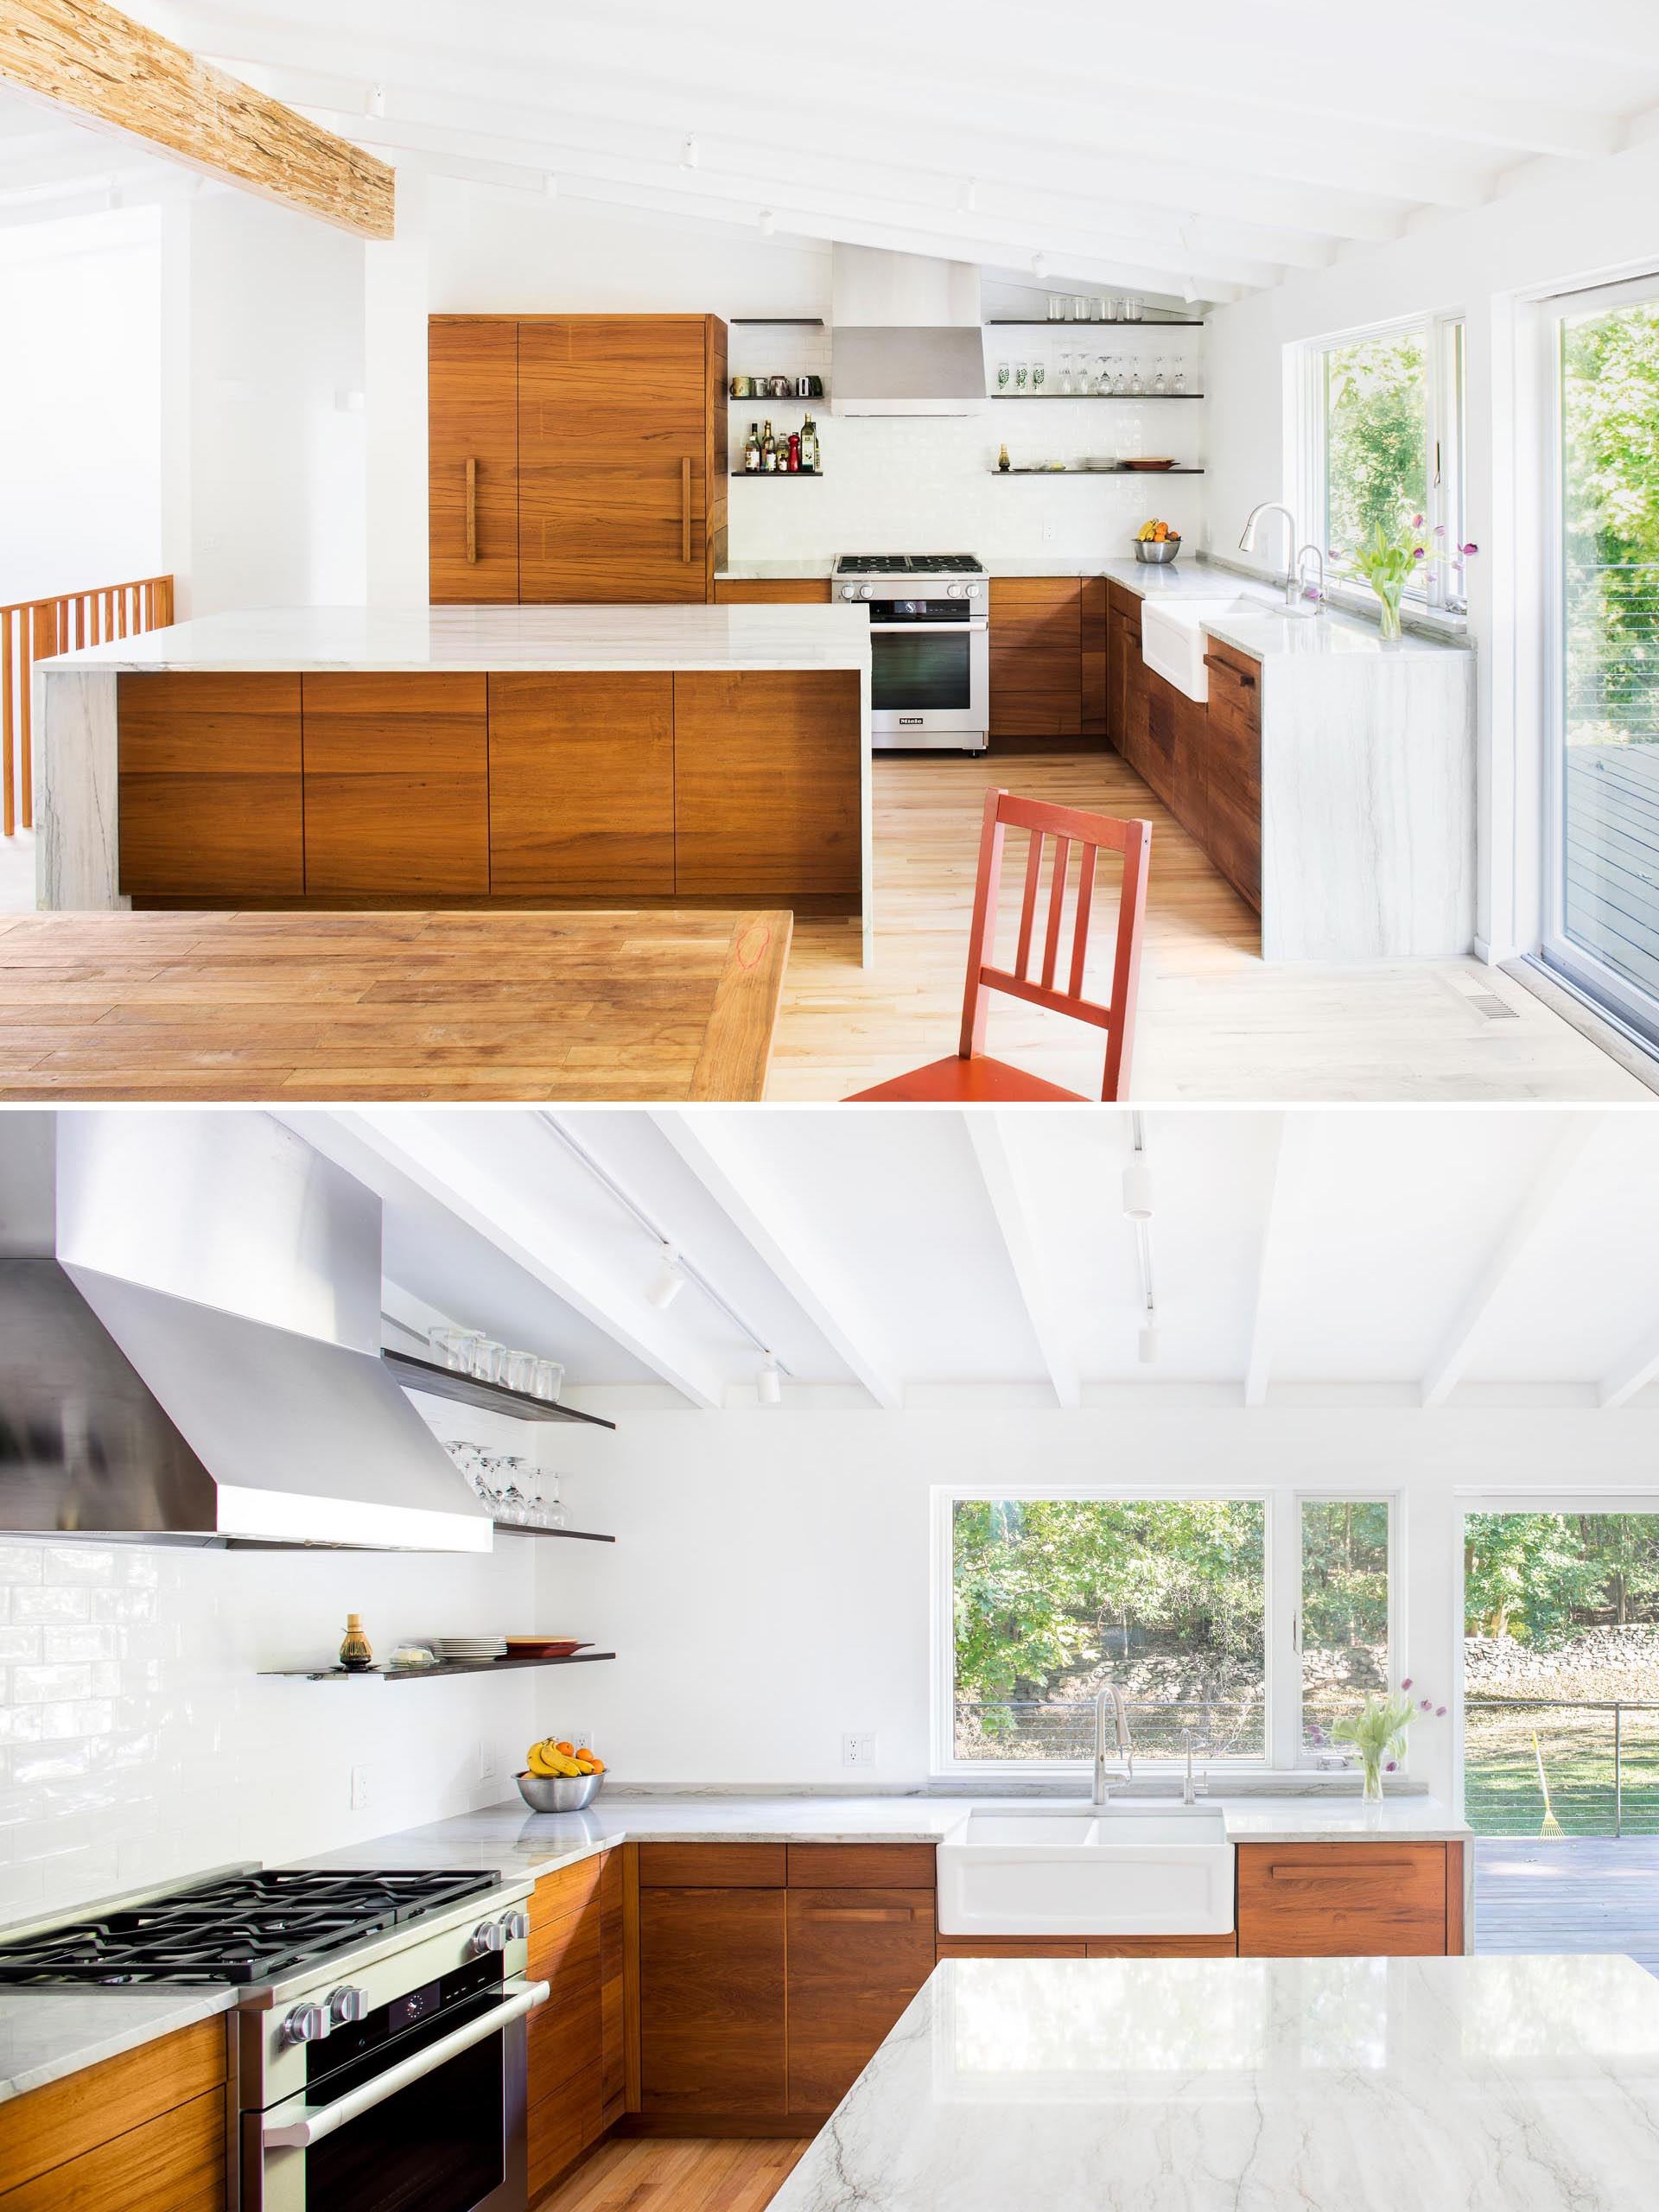 The remodeled kitchen includes wood cabinets, an island with a waterfall countertop, a white apron sink, and floating wood shelves.